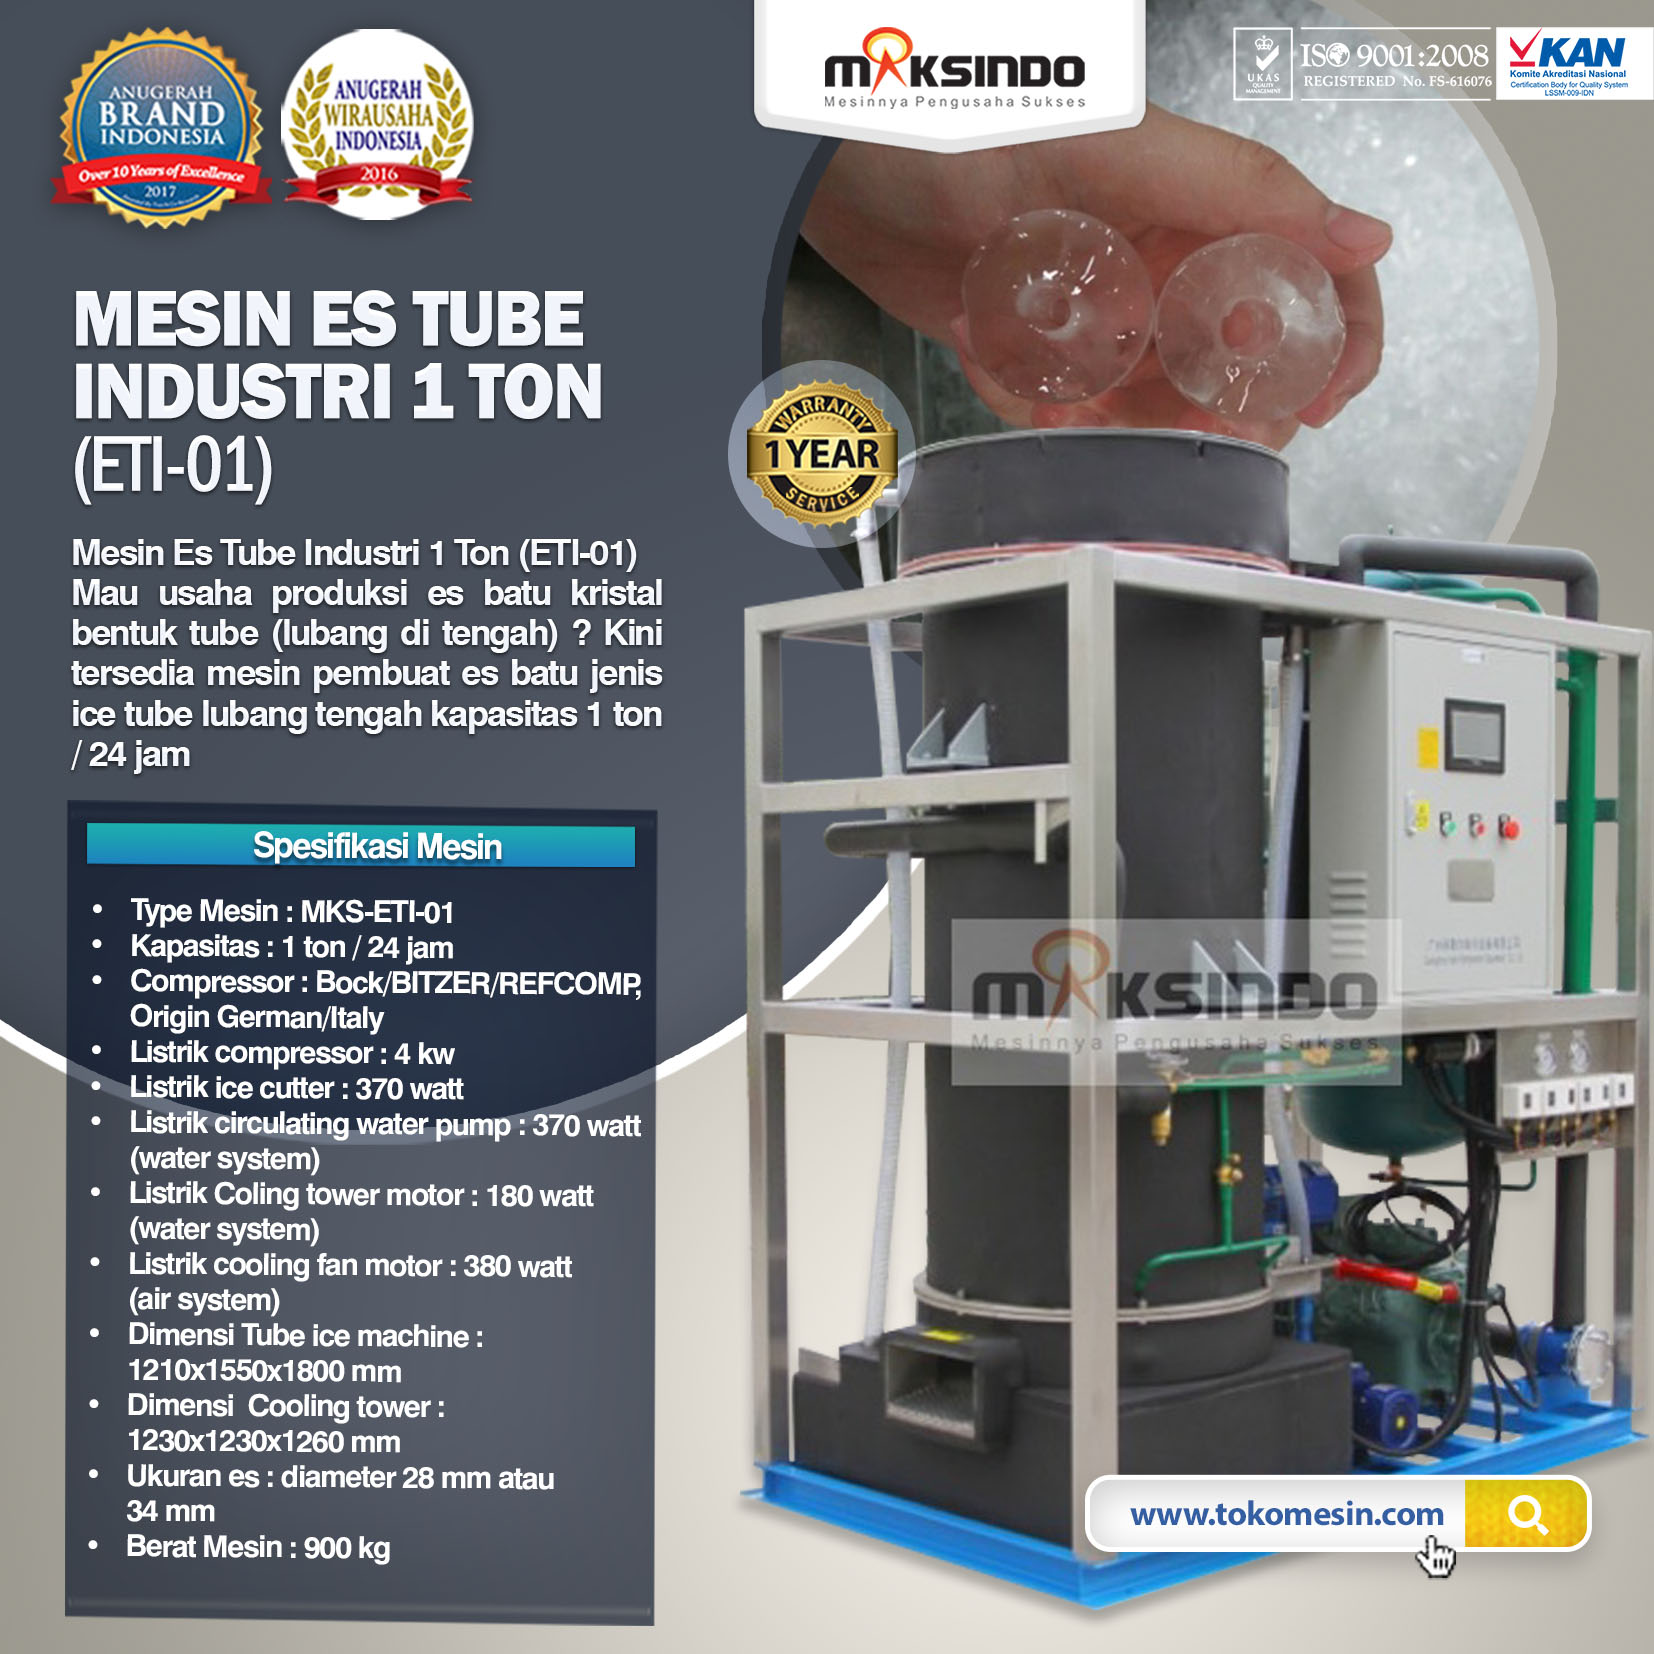 Mesin Es Tube Industri 1 Ton (ETI-01)